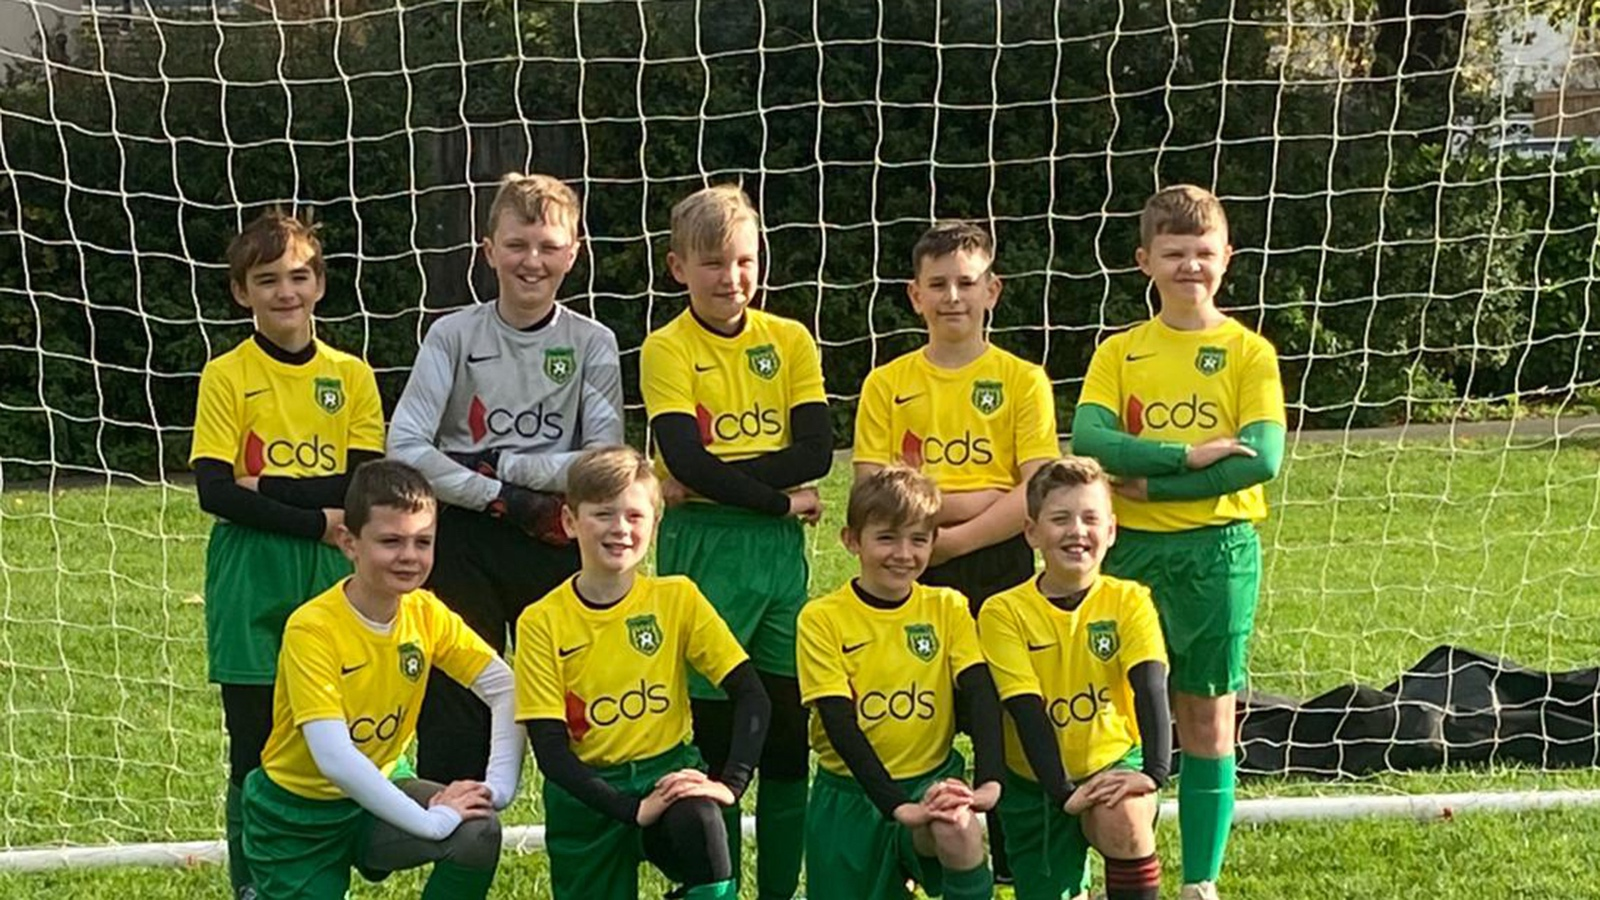 Young footballers proudly display their new CDS sponsored kit